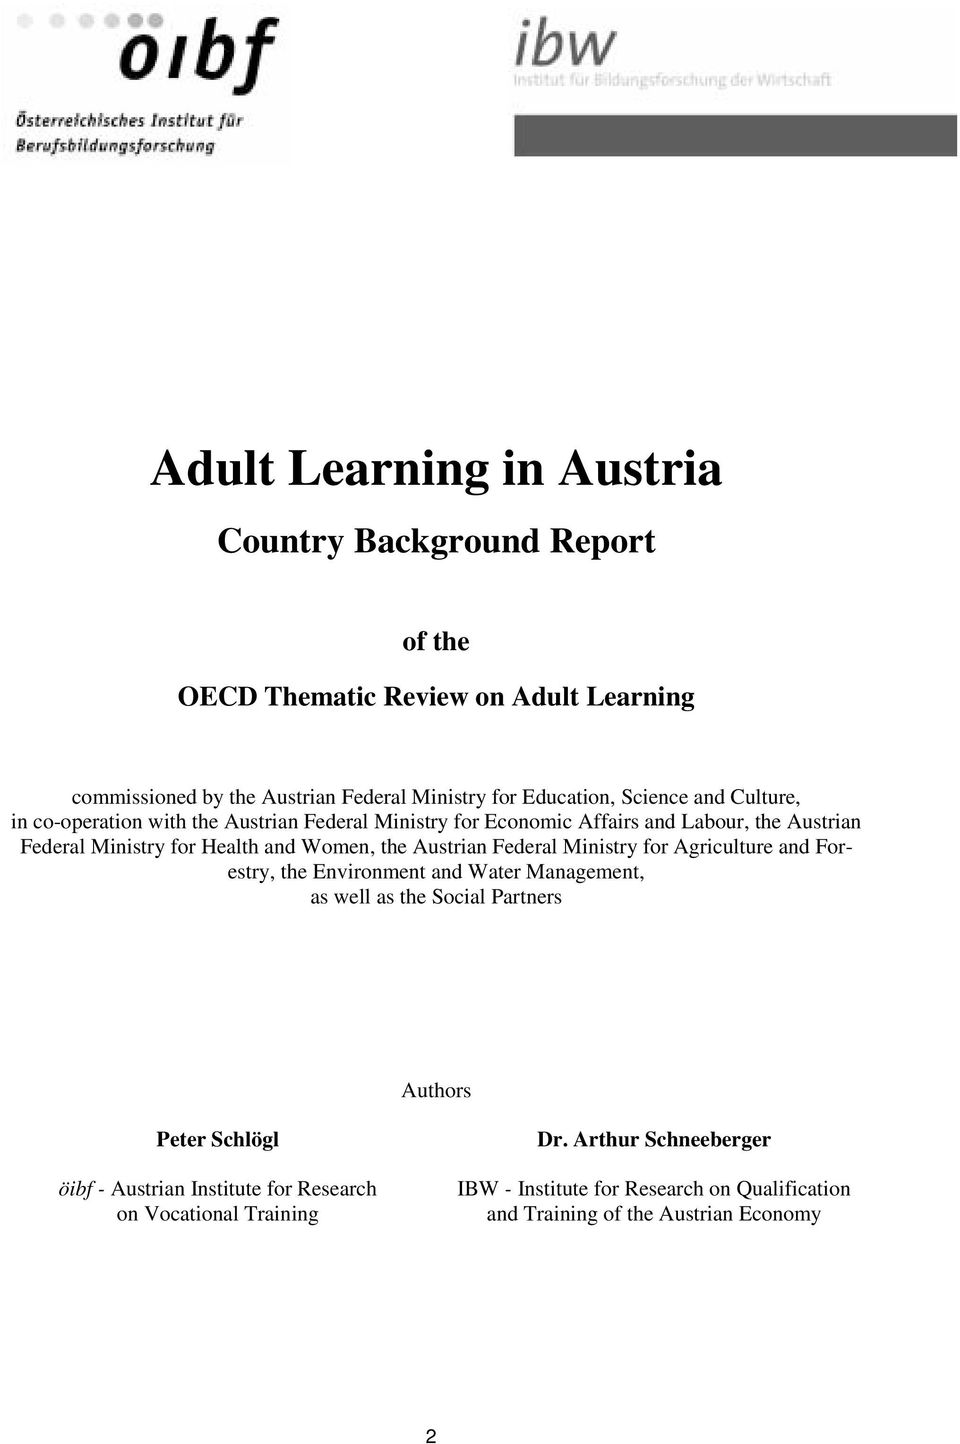 Austrian Federal Ministry for Agriculture and Forestry, the Environment and Water Management, as well as the Social Partners Authors Peter Schlögl öibf